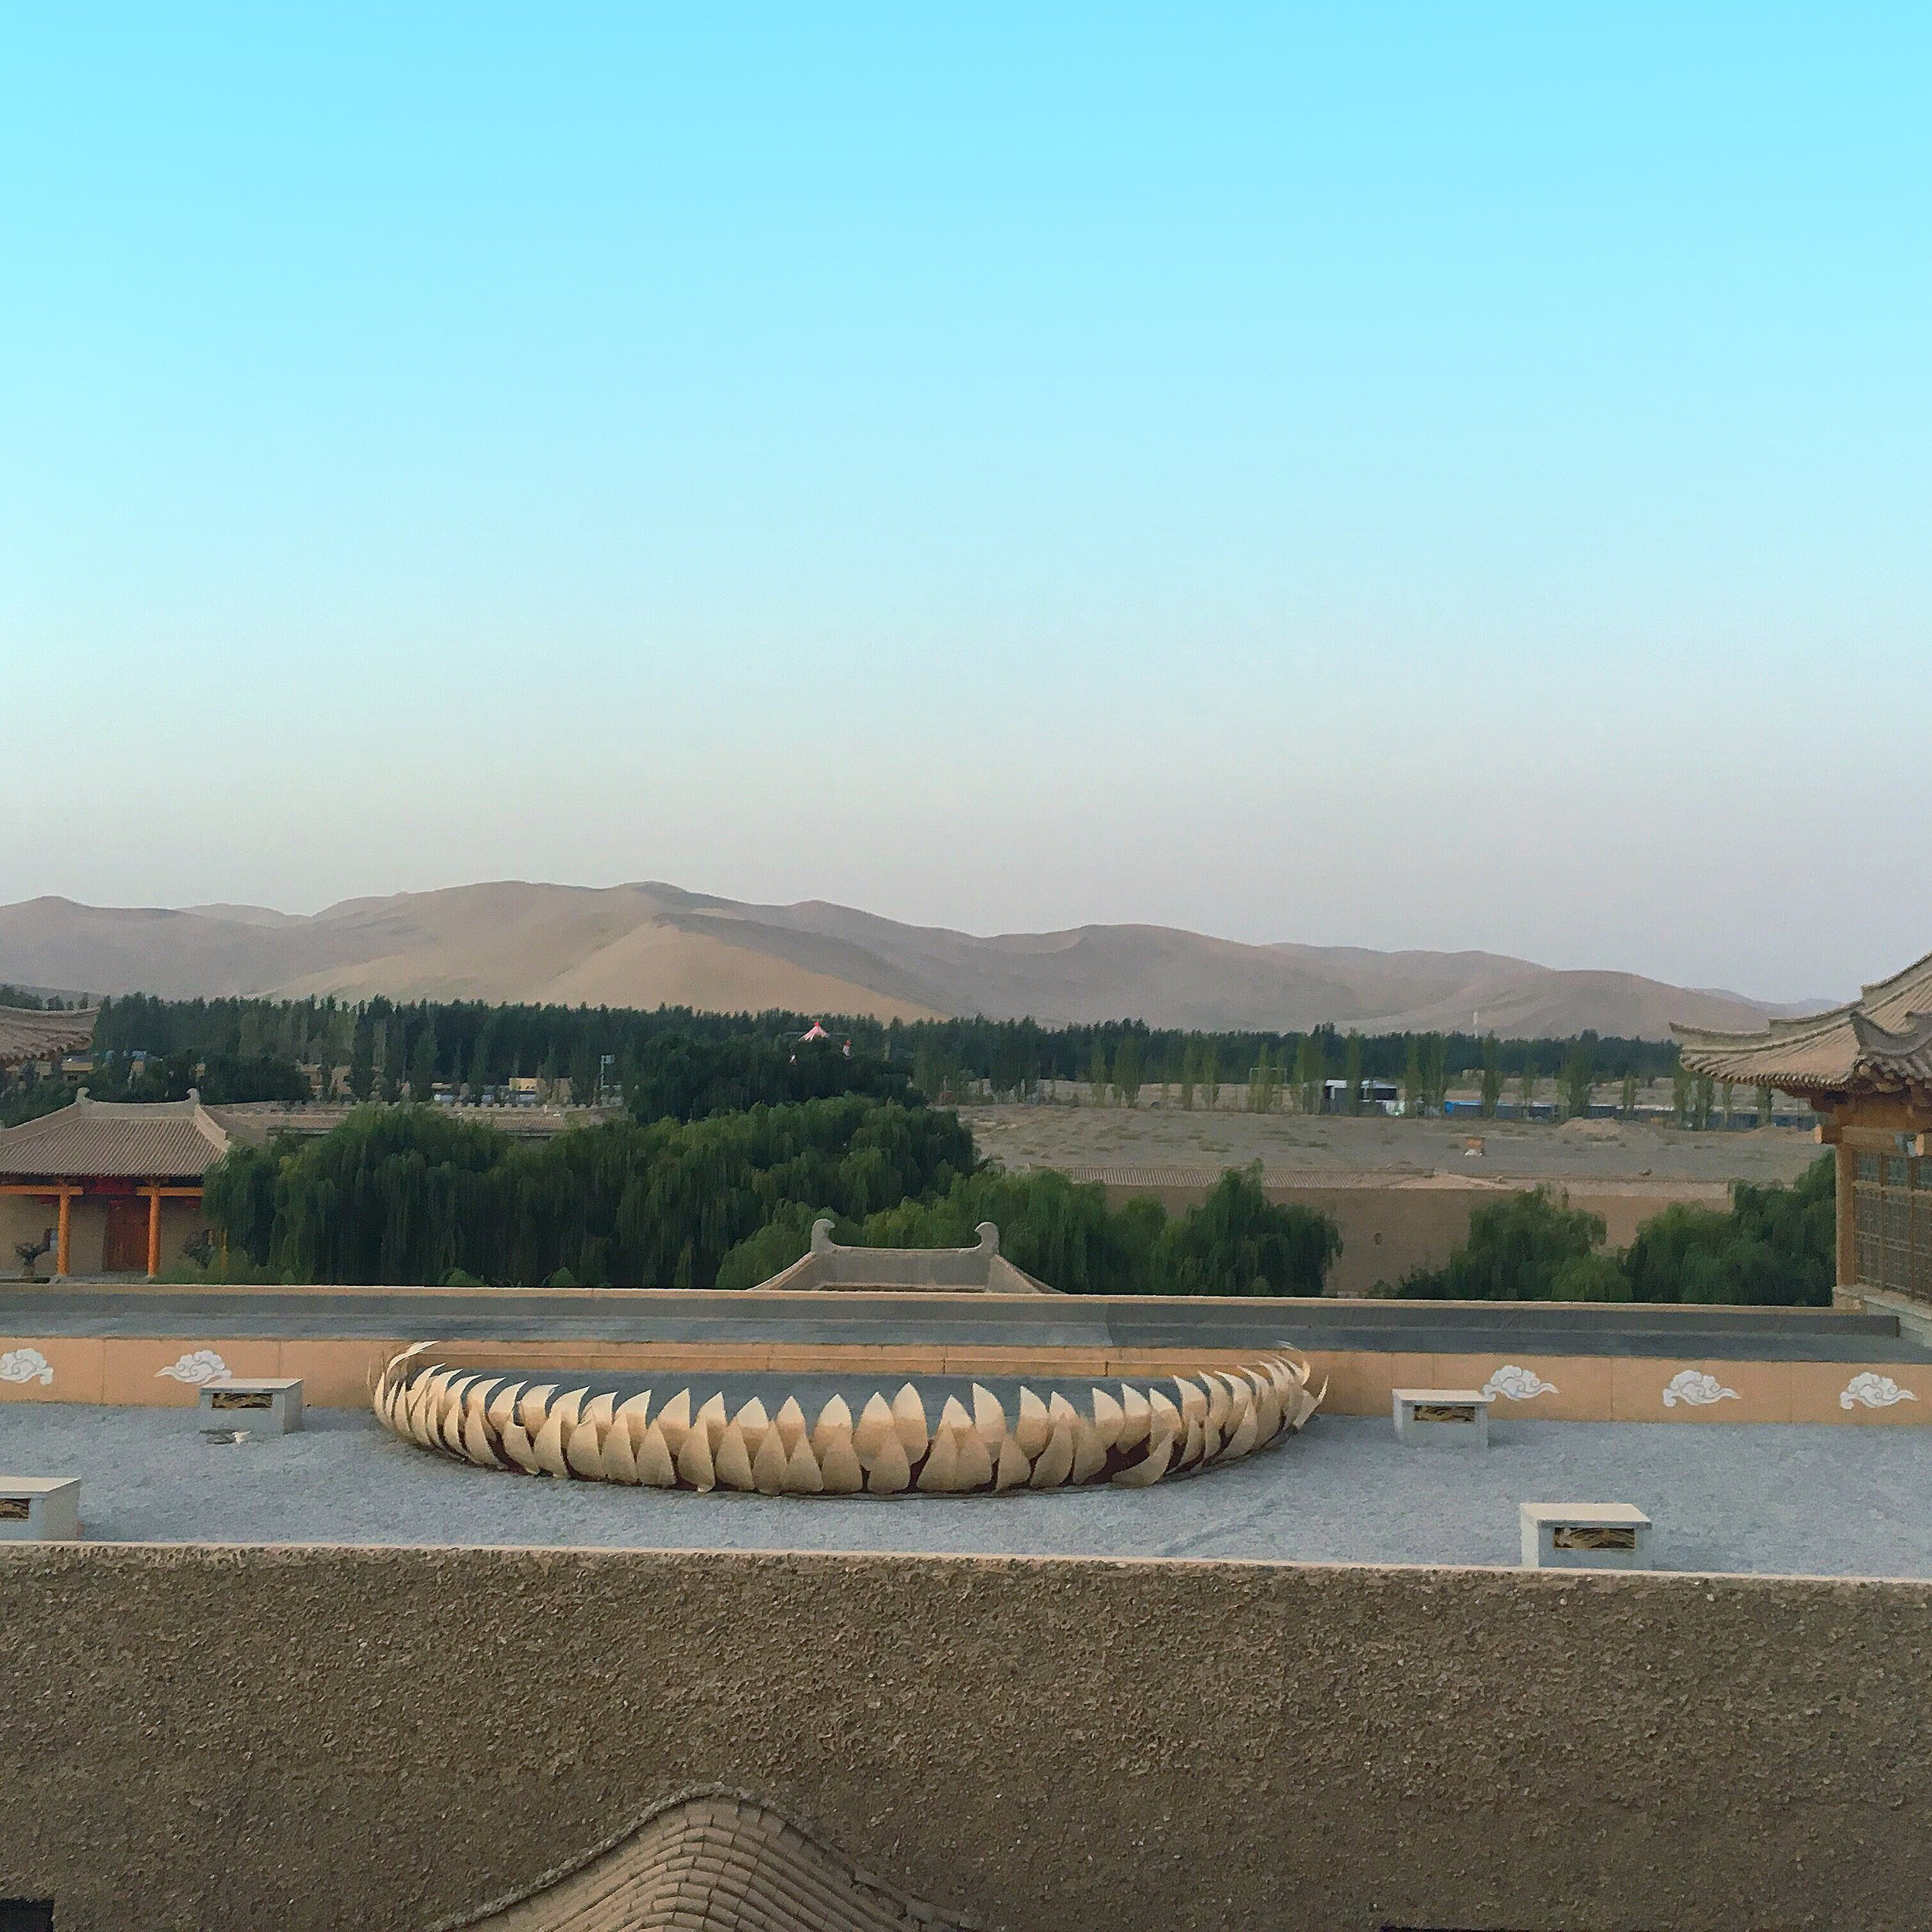 Dunhuang hotel on the dunes